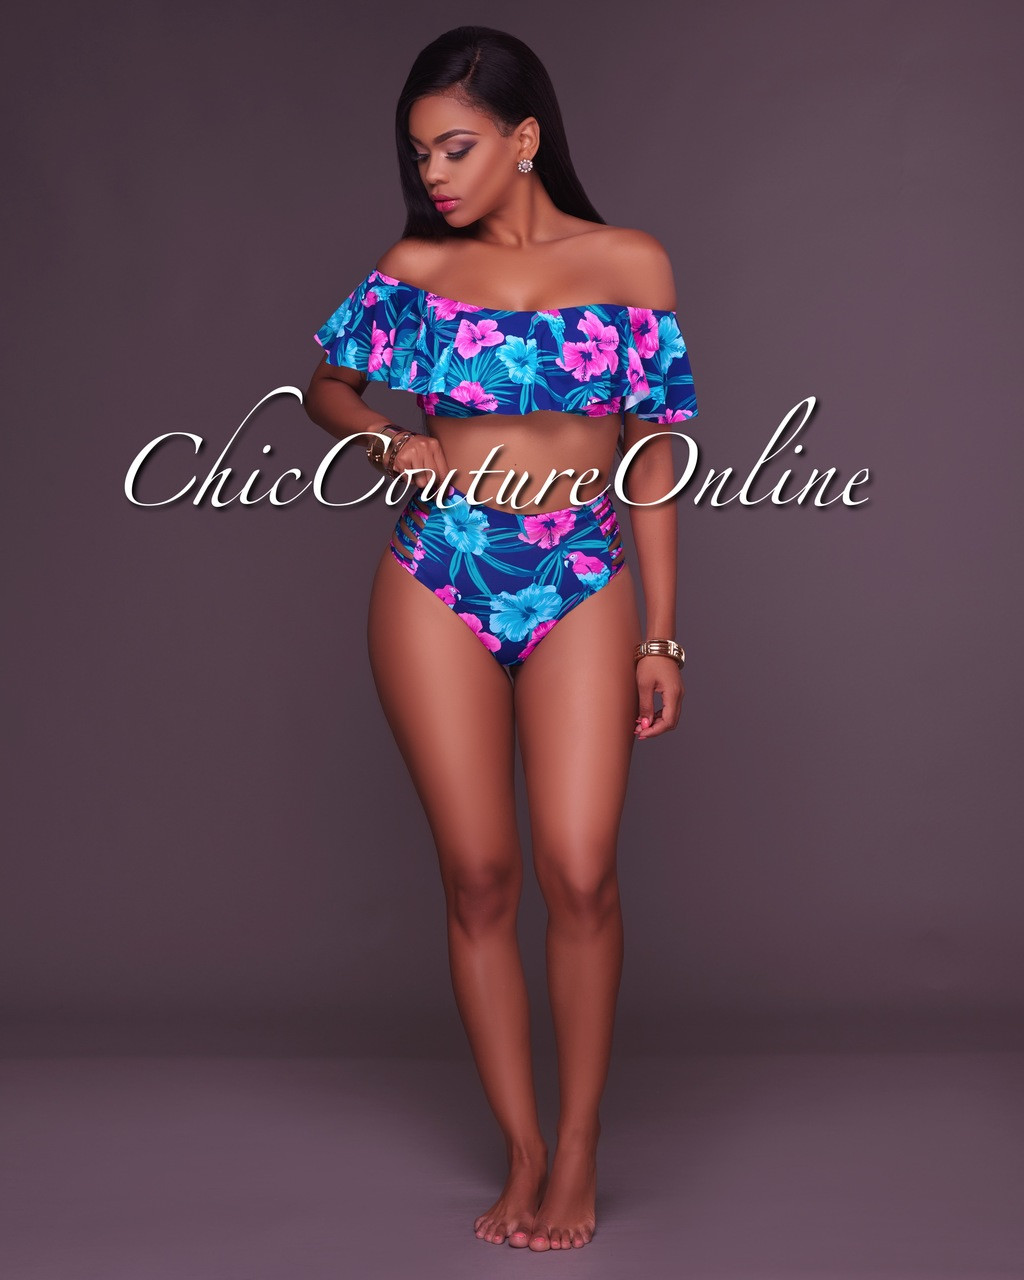 9f0ecfcb92284 ... Ruffle Top and Strappy High Waist Two Piece Swimsuit. Your Price    35.00 (You save  15.00). Image 1